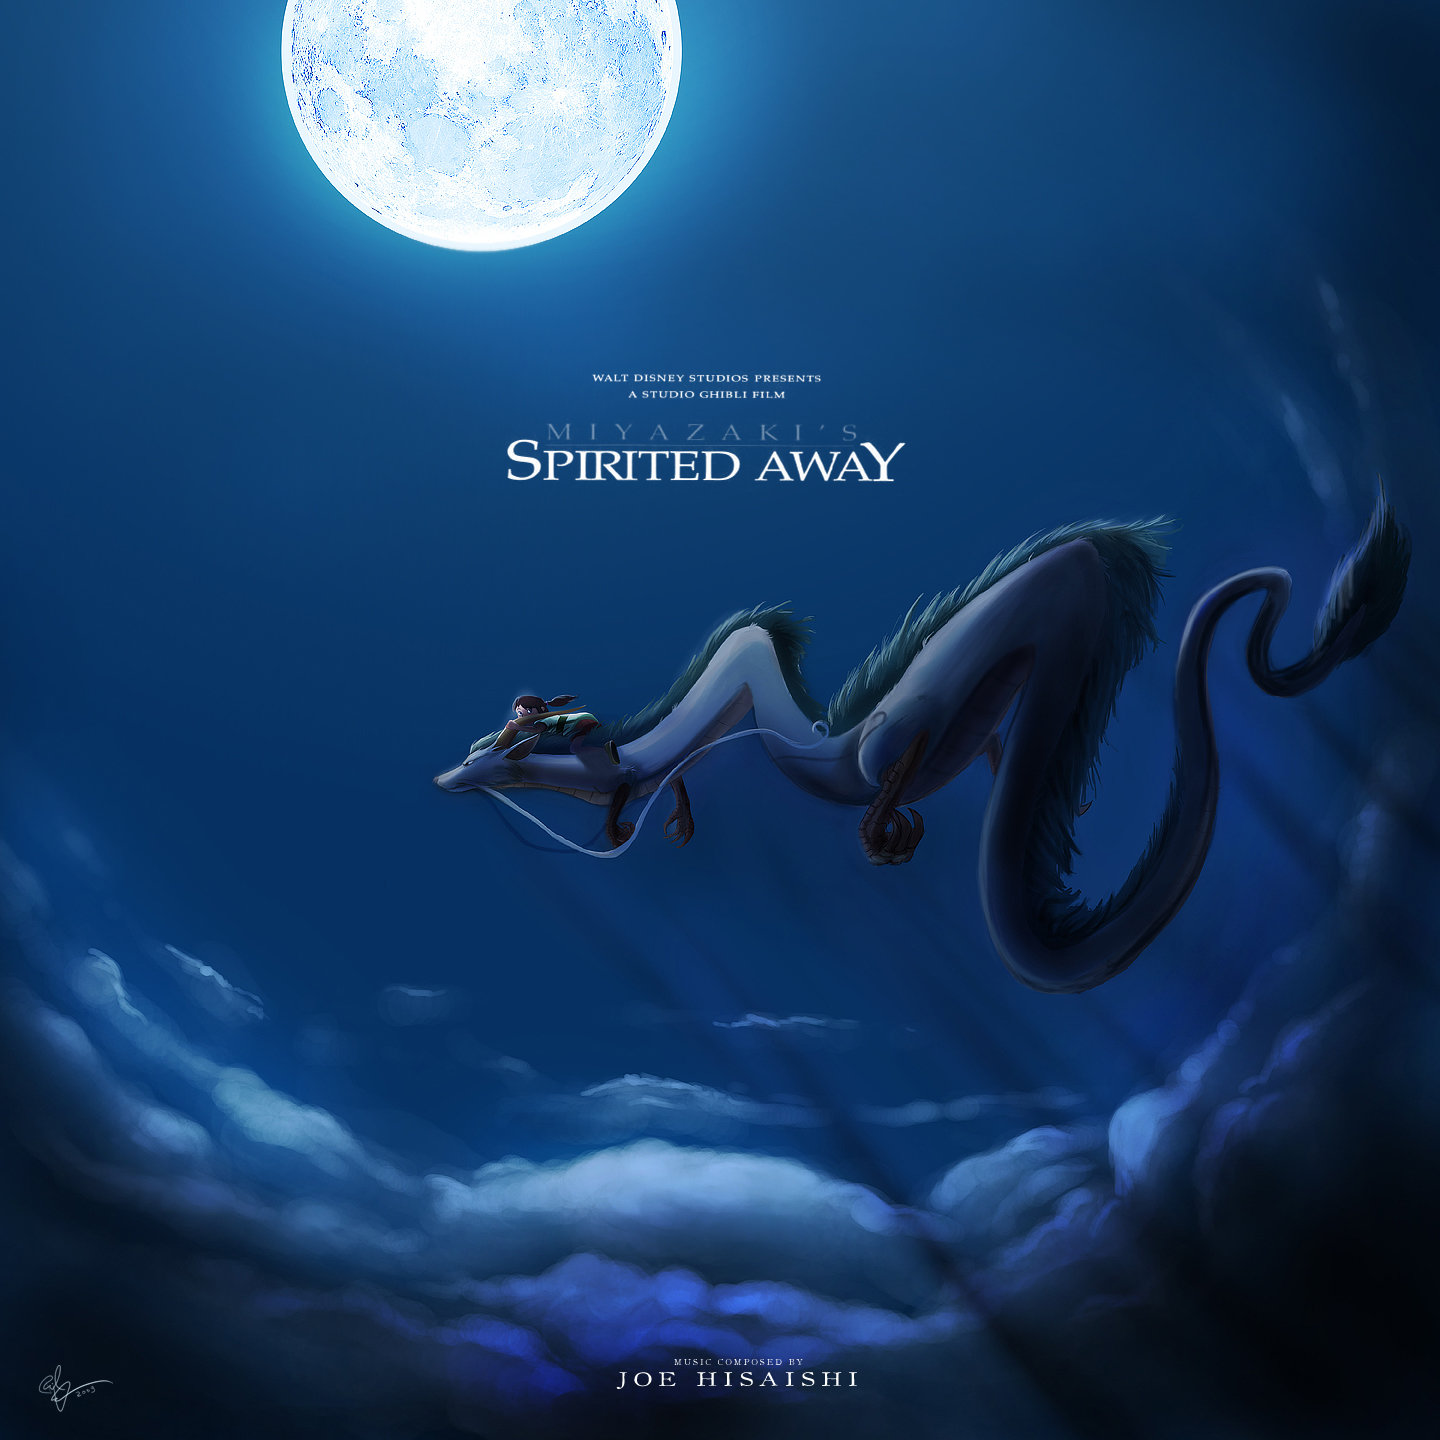 http://s9.picofile.com/file/8316302892/spirited_away_custom_cd_cover_by_lord_phillock.jpg